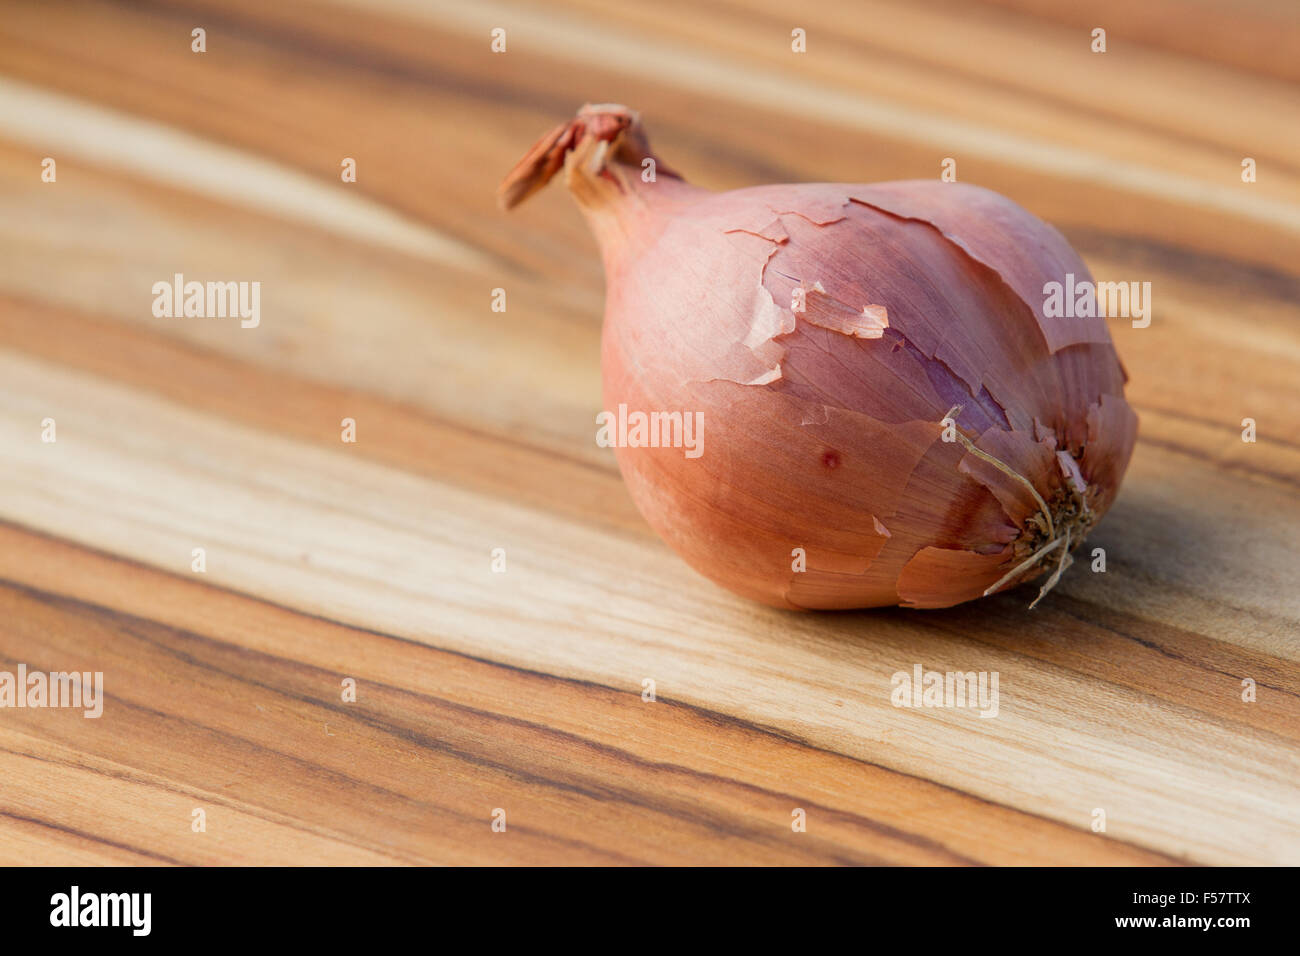 close up of an organic shallot on a wooden table - Stock Image